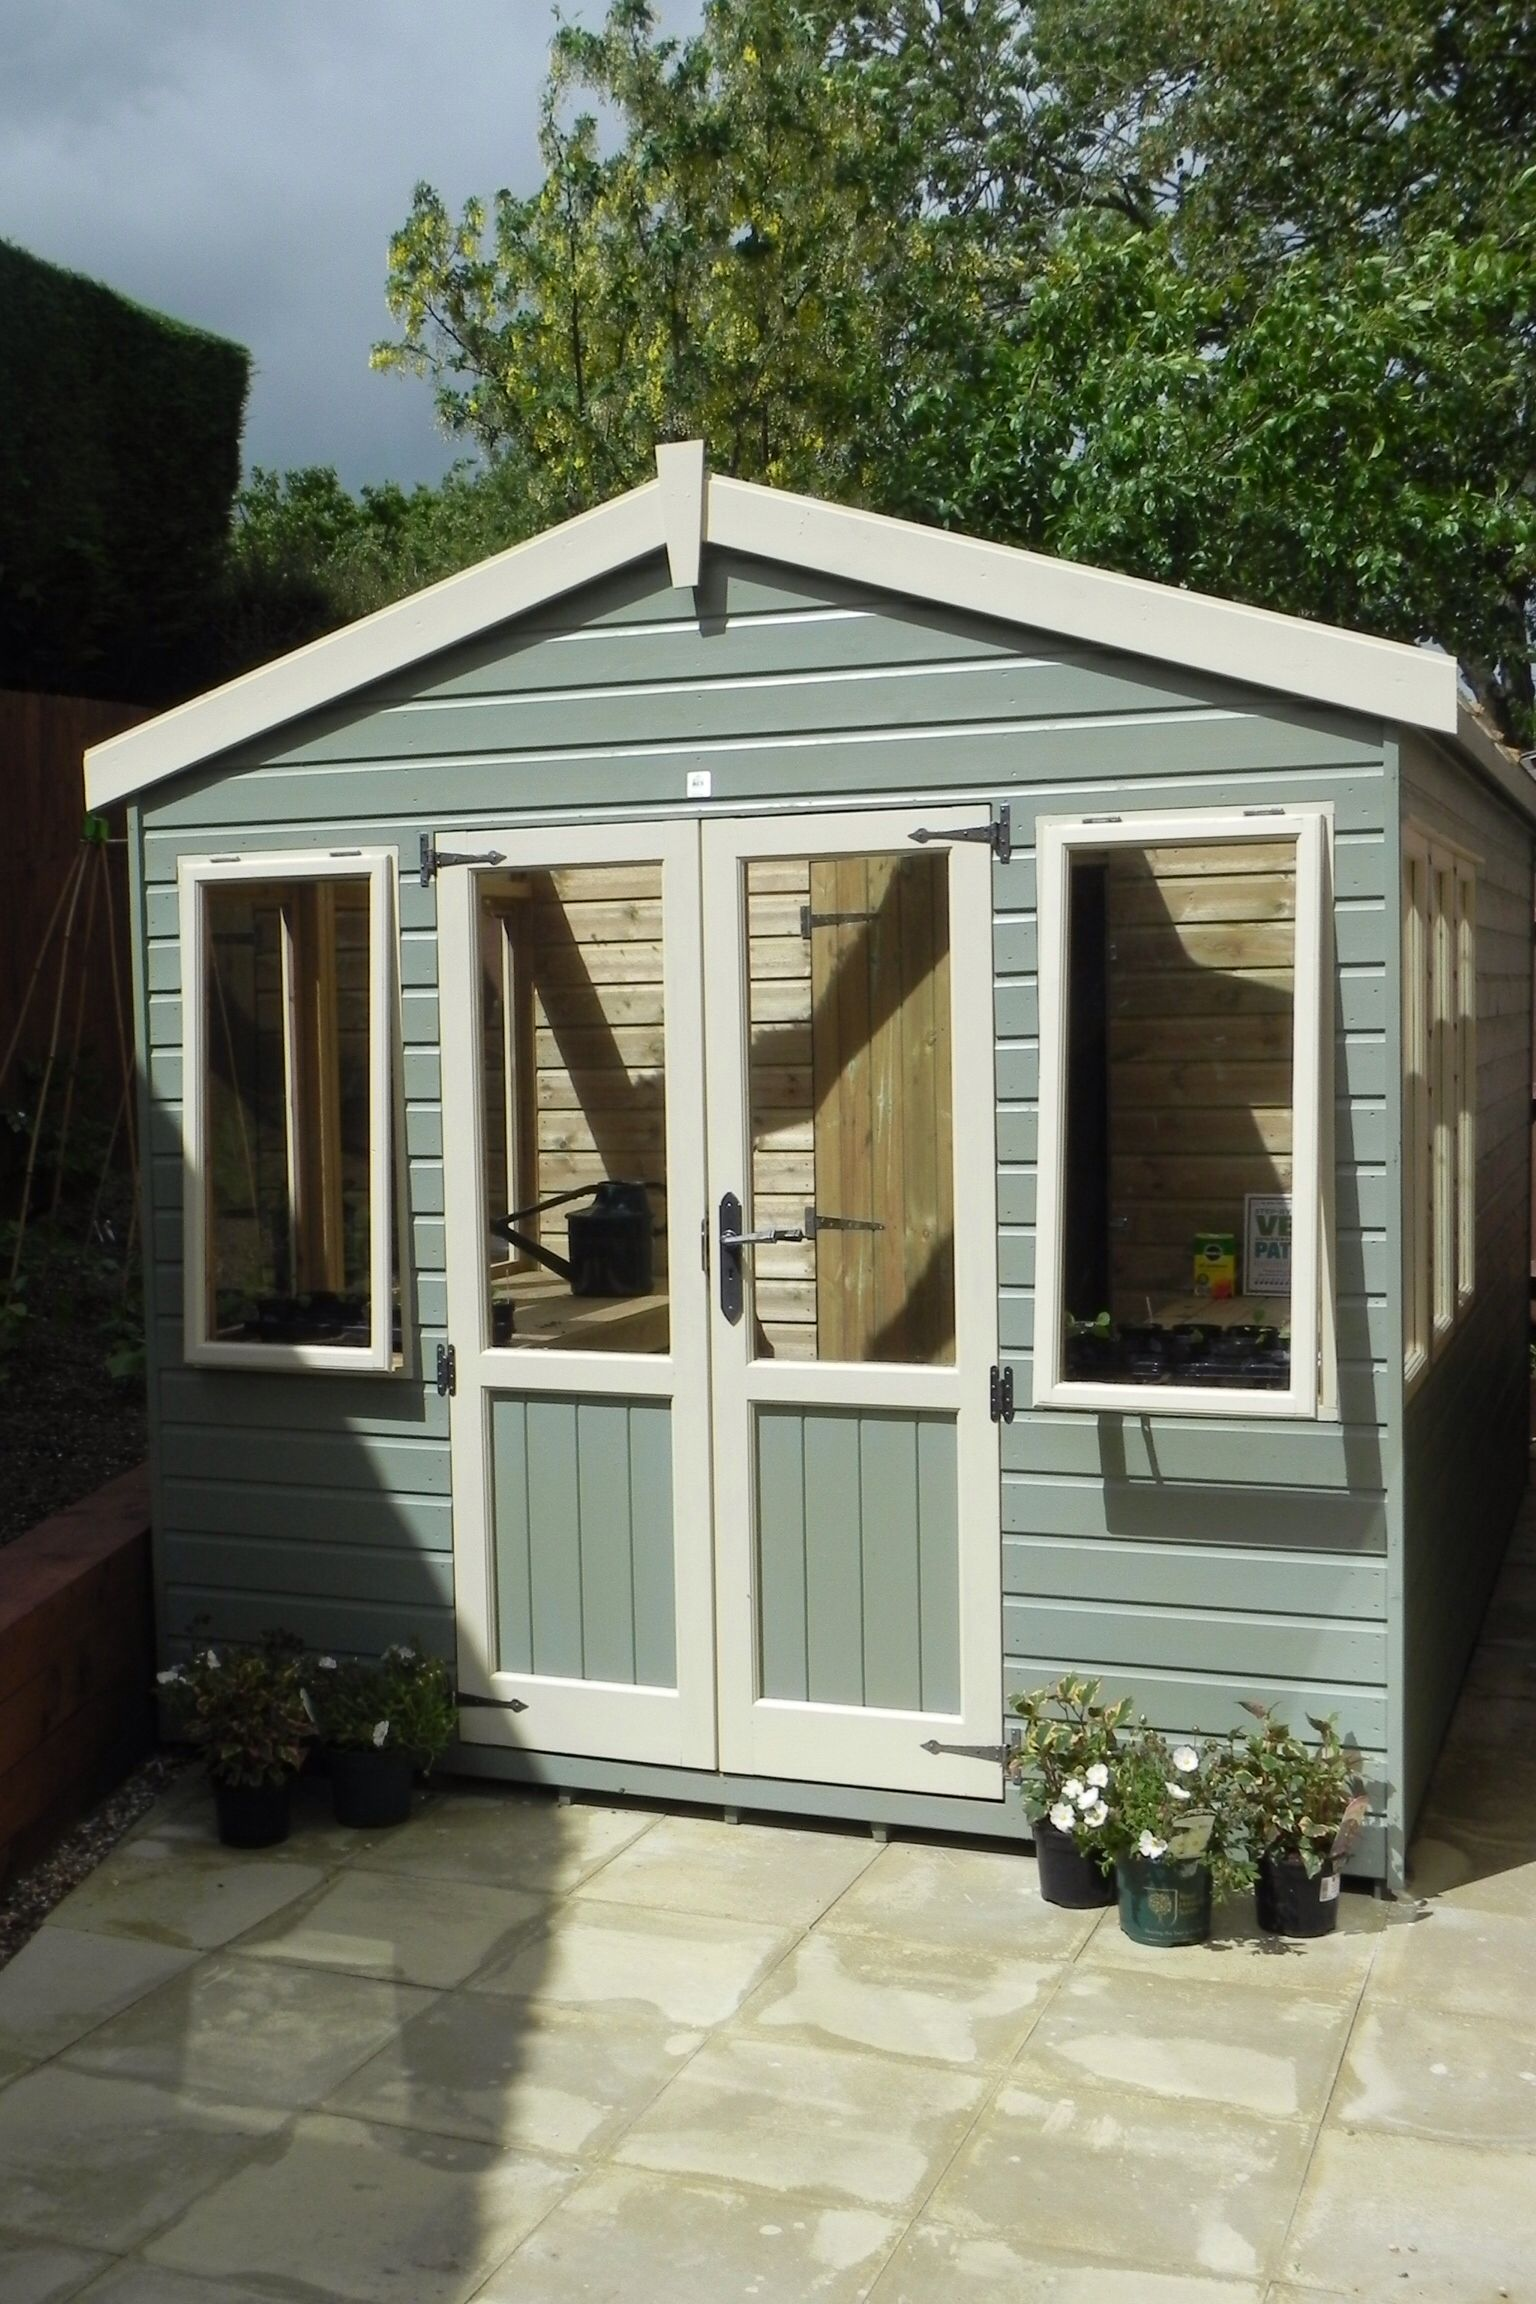 Bespoke Potting Shed painted in Ronseal Colours Painted